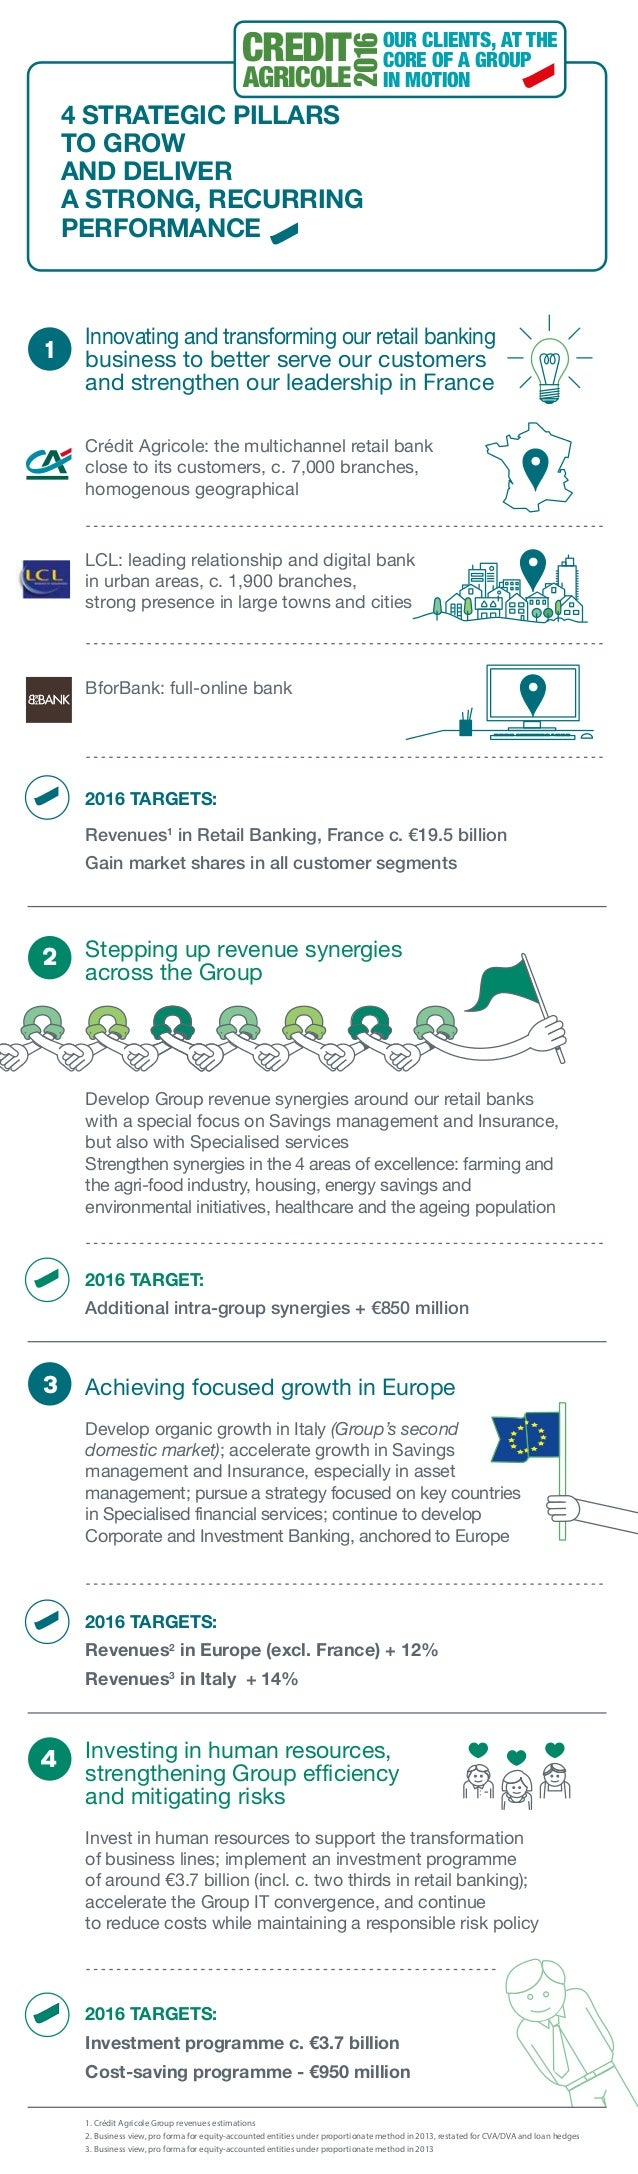 Crédit agricole 2016 4 strategic pillars to grow and deliver a strong recurring performance